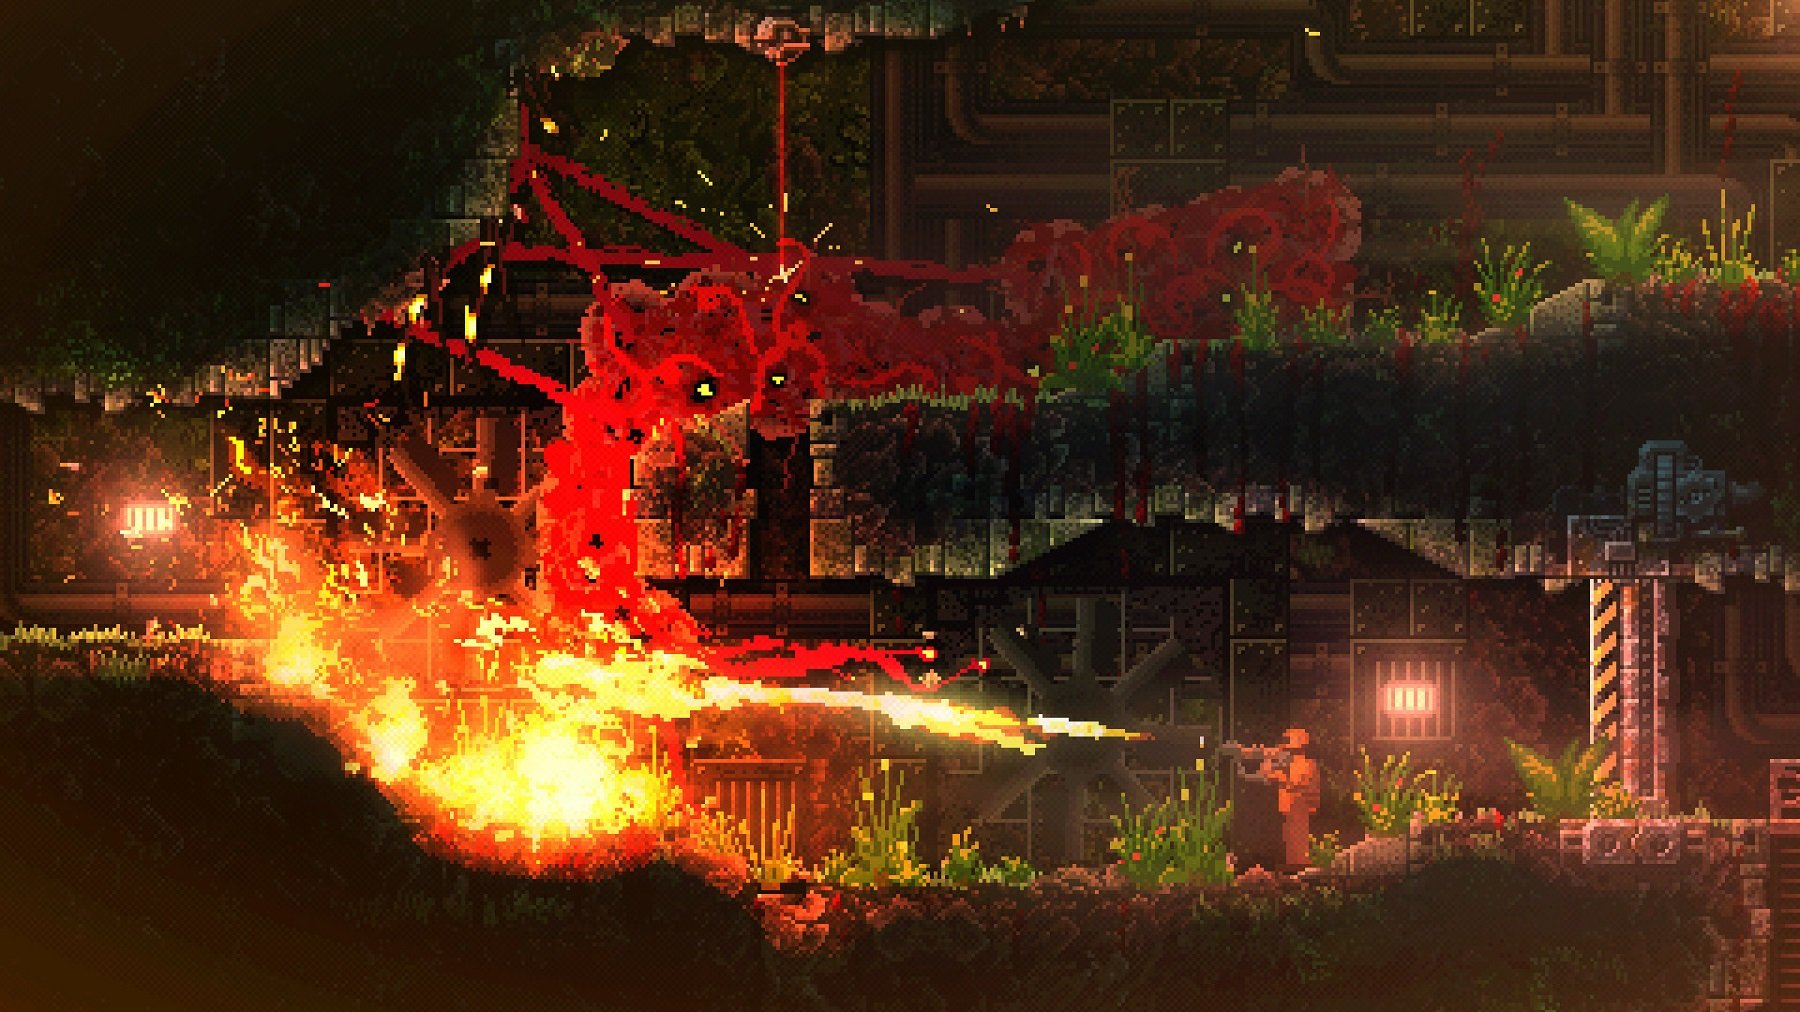 In Carrion, you play as a large, red monster capable of ripping your foes limb from limb.